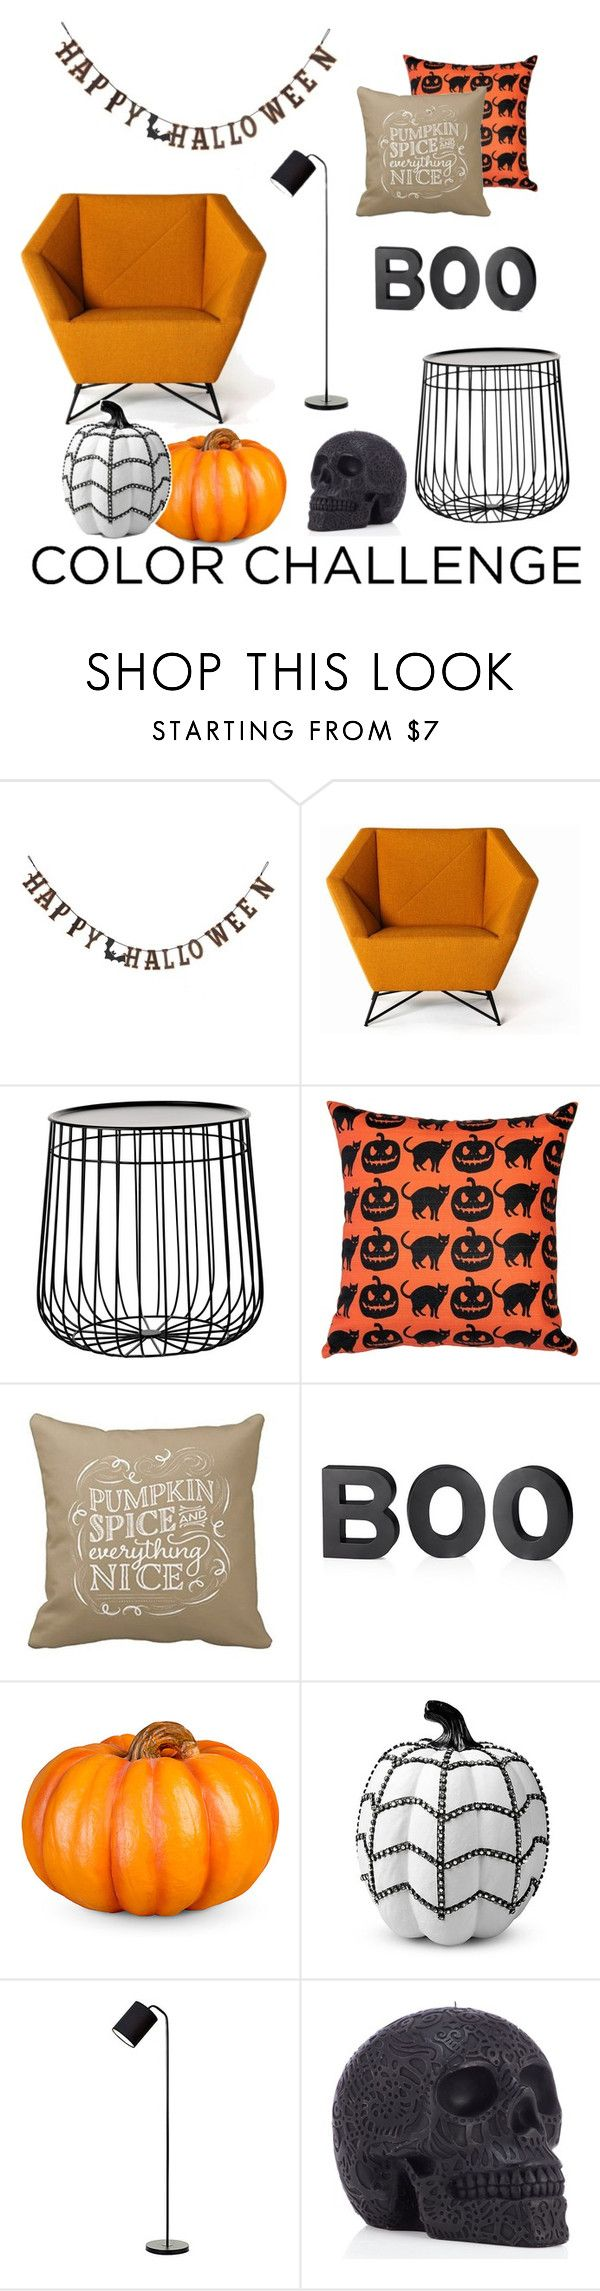 """""""Halloween Decor"""" by maryazeno ❤ liked on Polyvore featuring interior, interiors, interior design, home, home decor, interior decorating, Creative Co-op, Pols Potten, Pillow Decor and Crate and Barrel"""